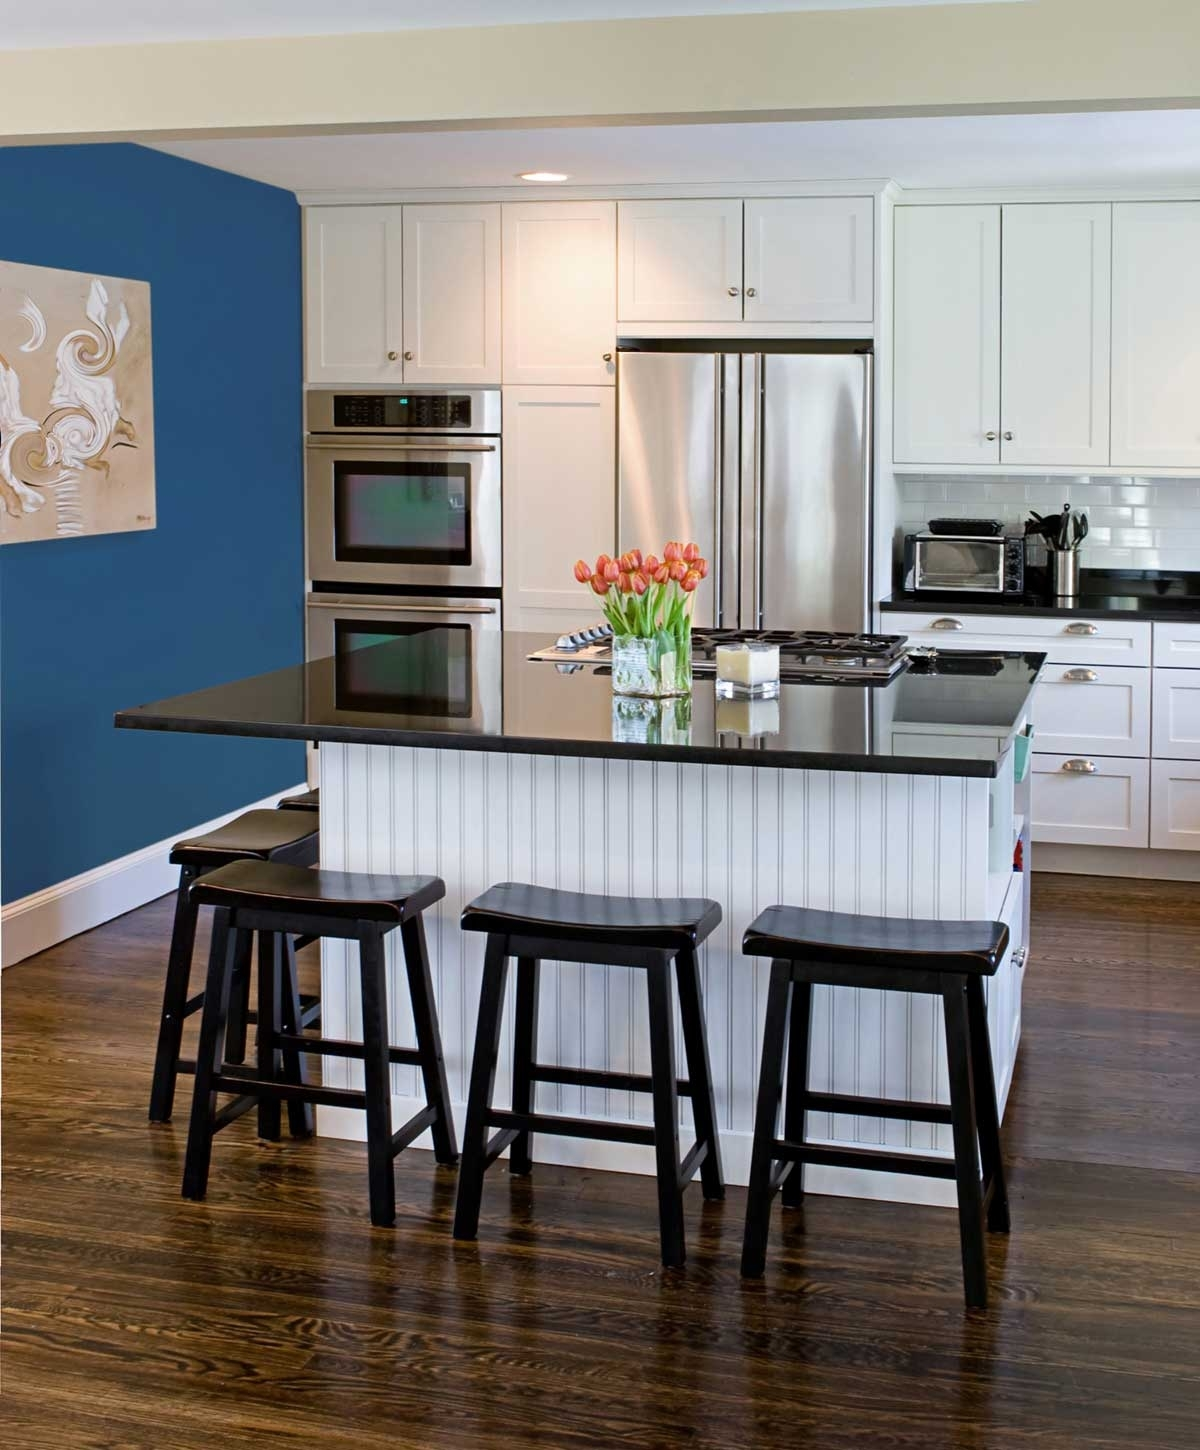 Wonderful Orange Accents Kitchen Design With Blue Wall (View 5 of 15)